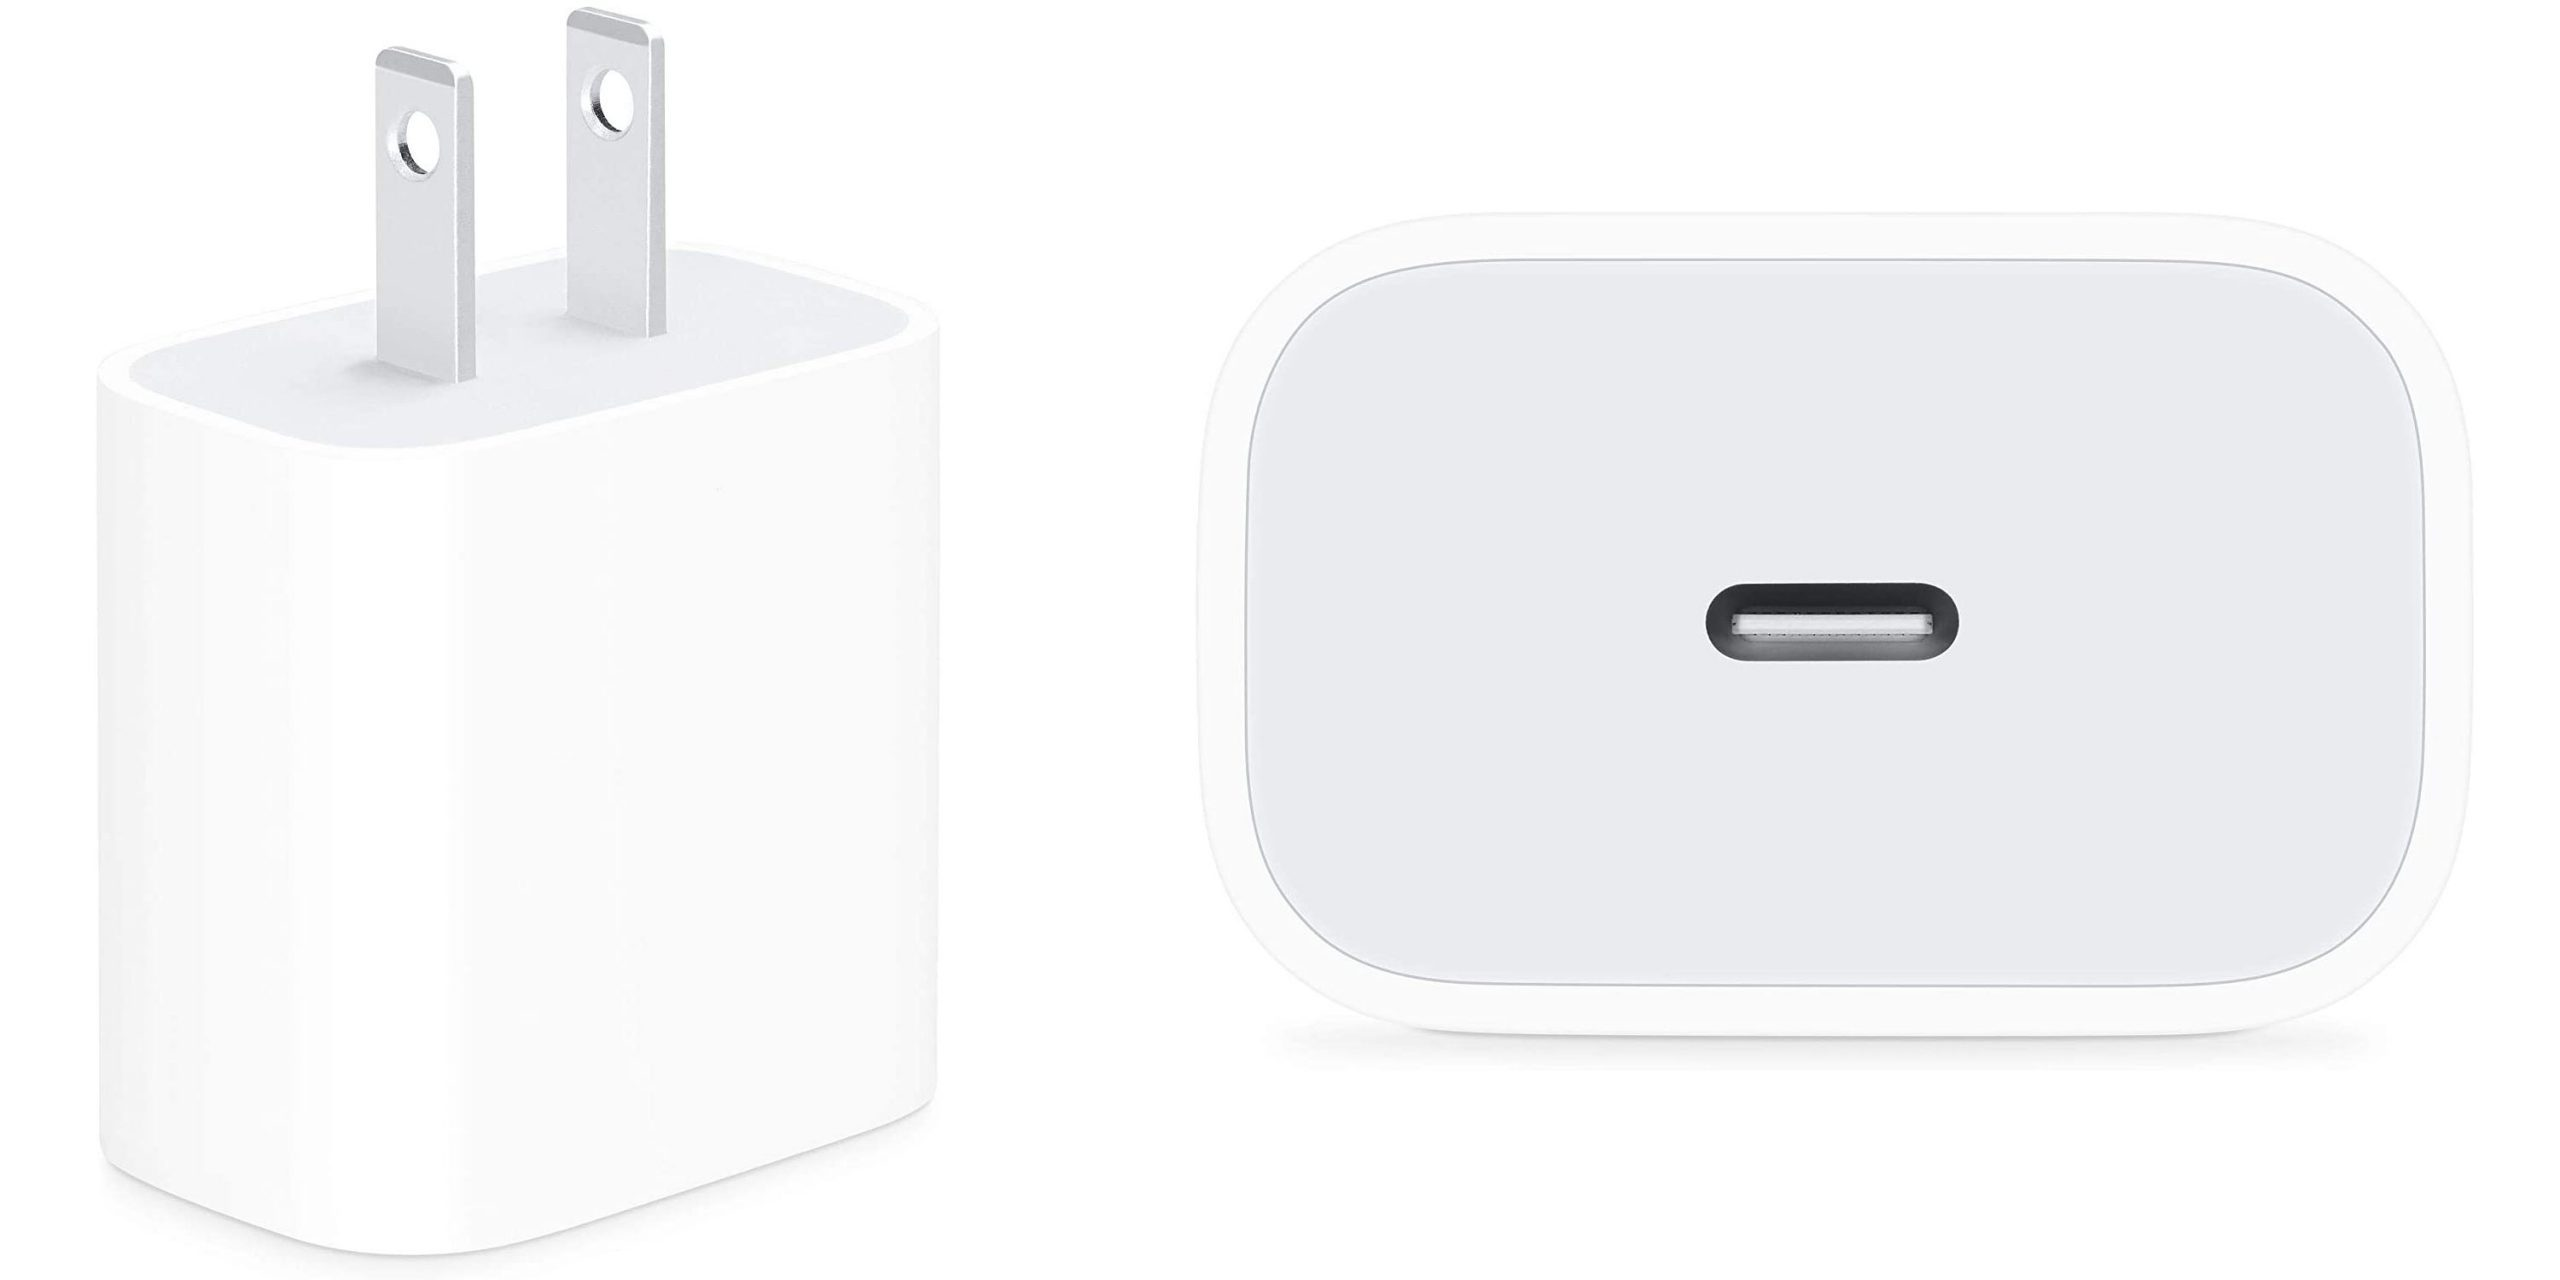 Apple's USB-C Charger's Incompatibility Cause